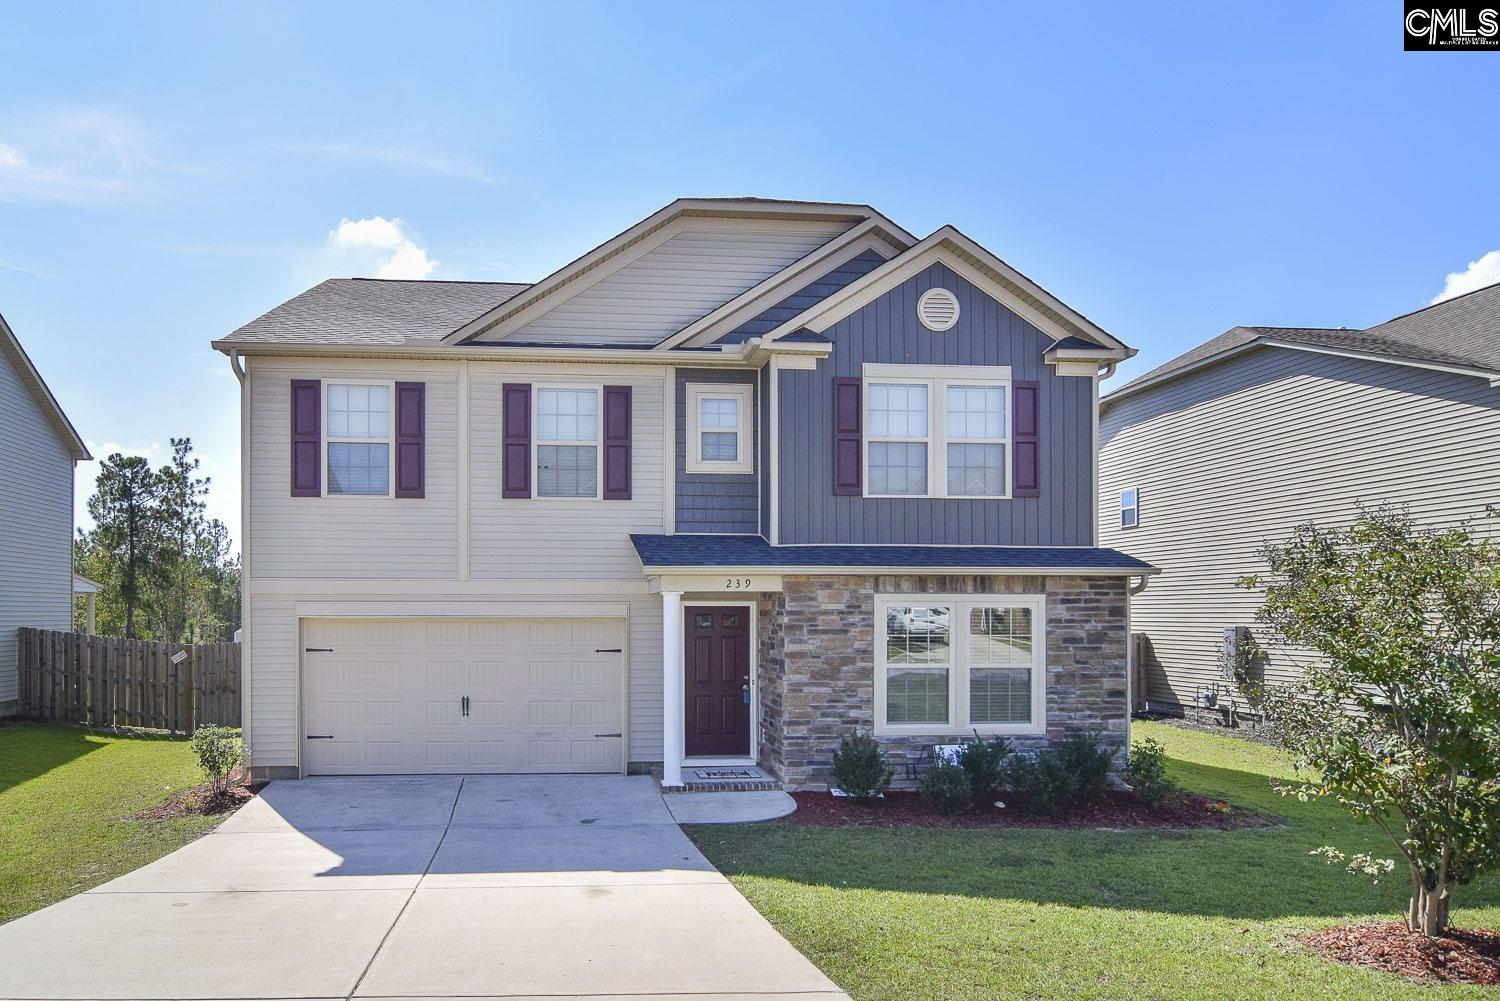 239 Meadow Saffron Lexington, SC 29073